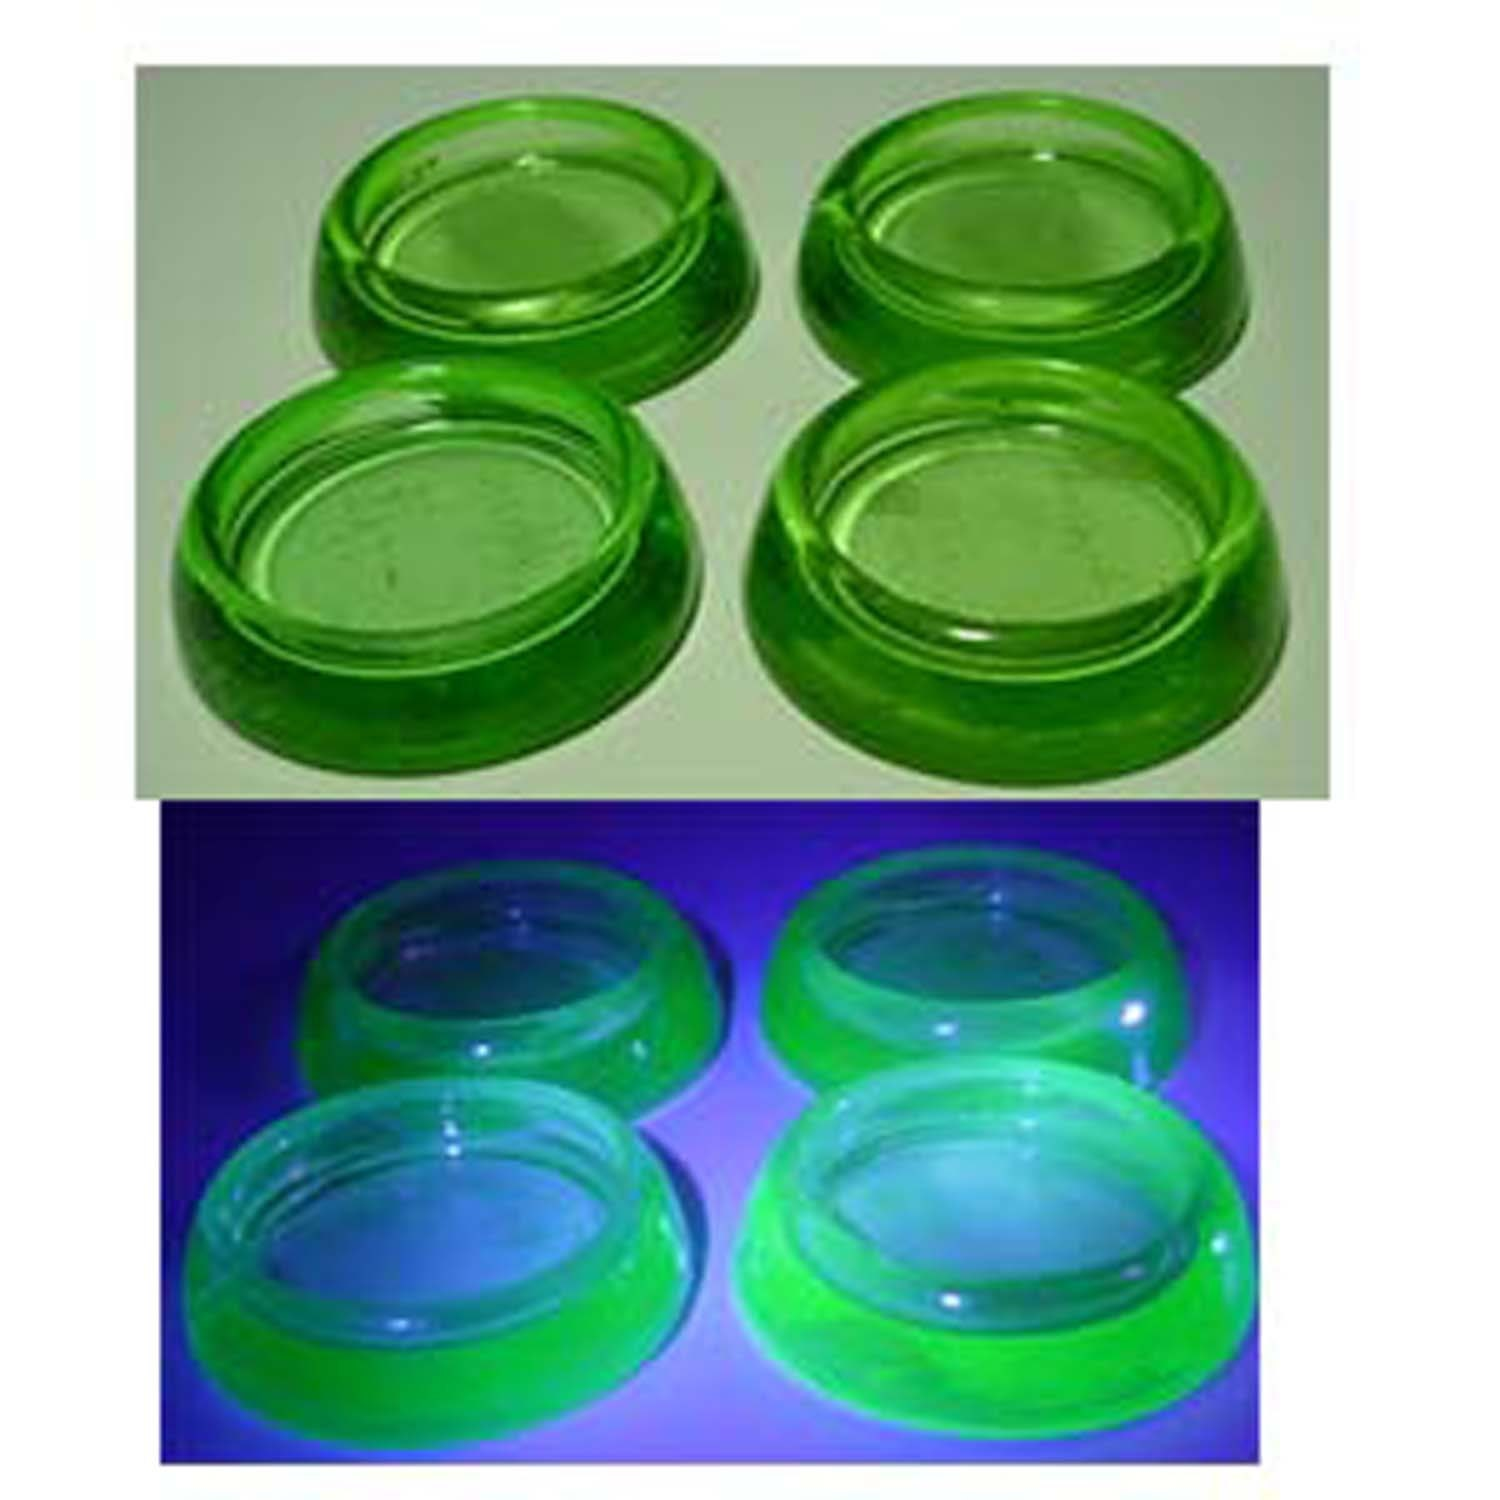 Uranium Vaseline Glass Four Furniture Coasters Or Sliders Hazel Atlas Home And Garden Household